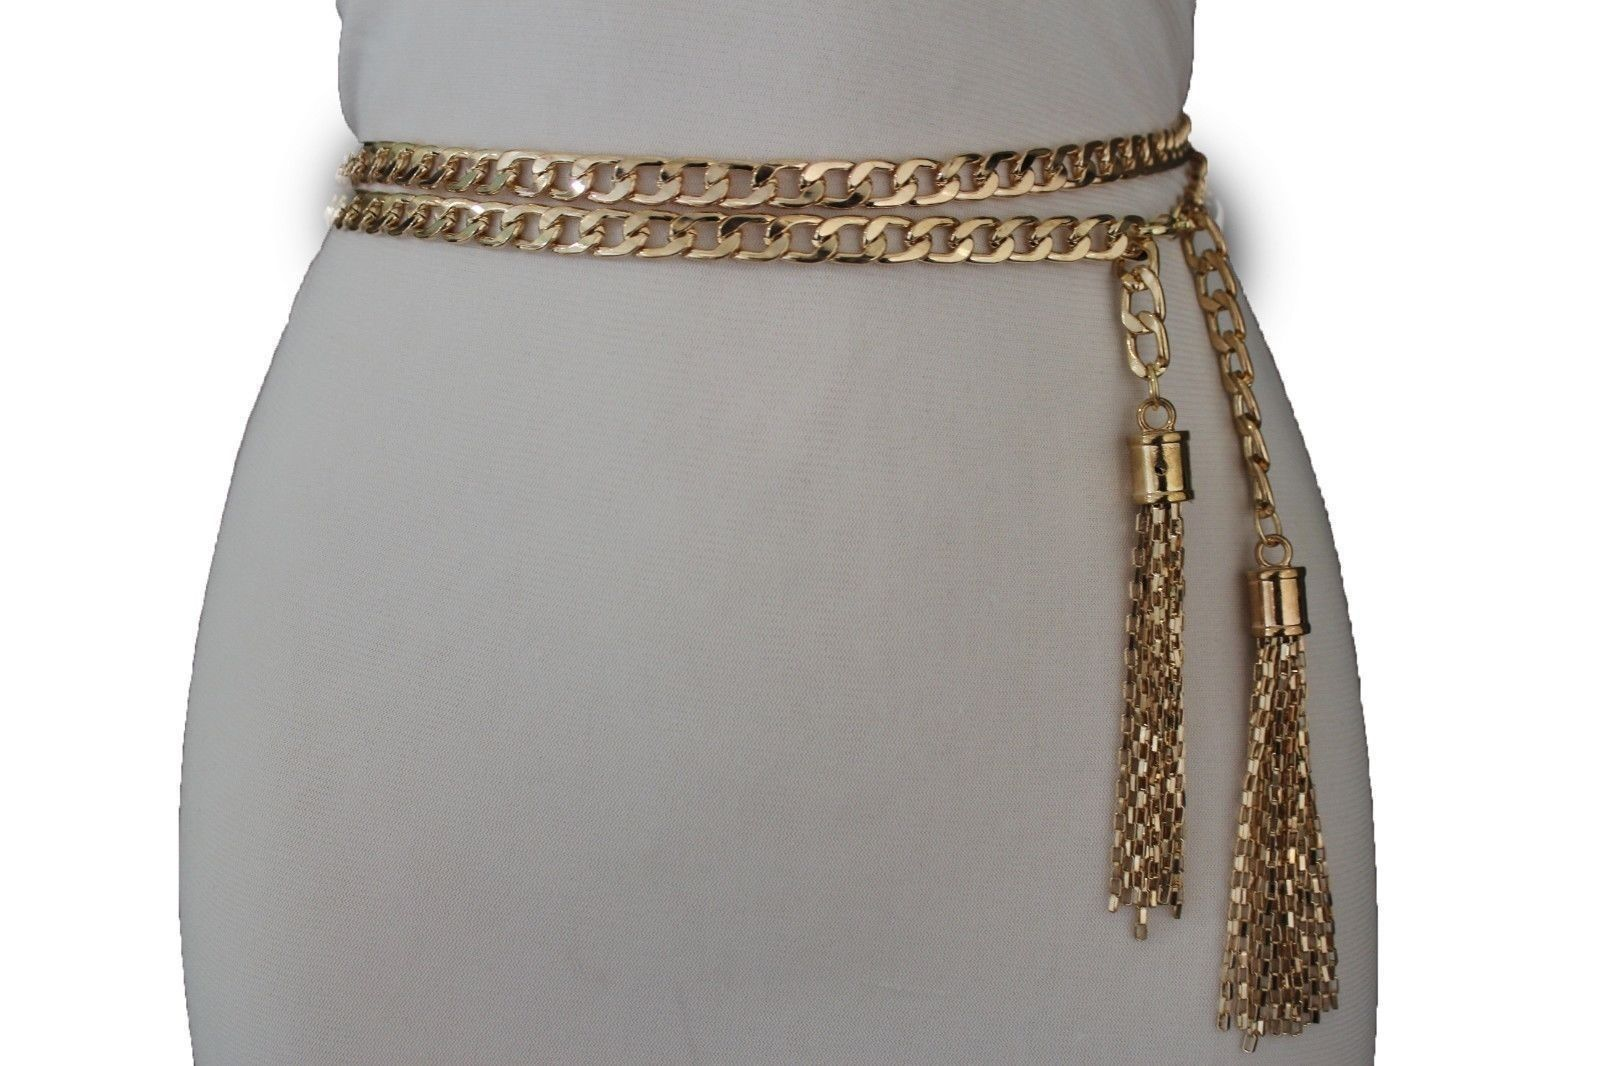 Women Silver Metal Chains Narrow Fashion Belt Long Double Leaves Buckle S M L XL